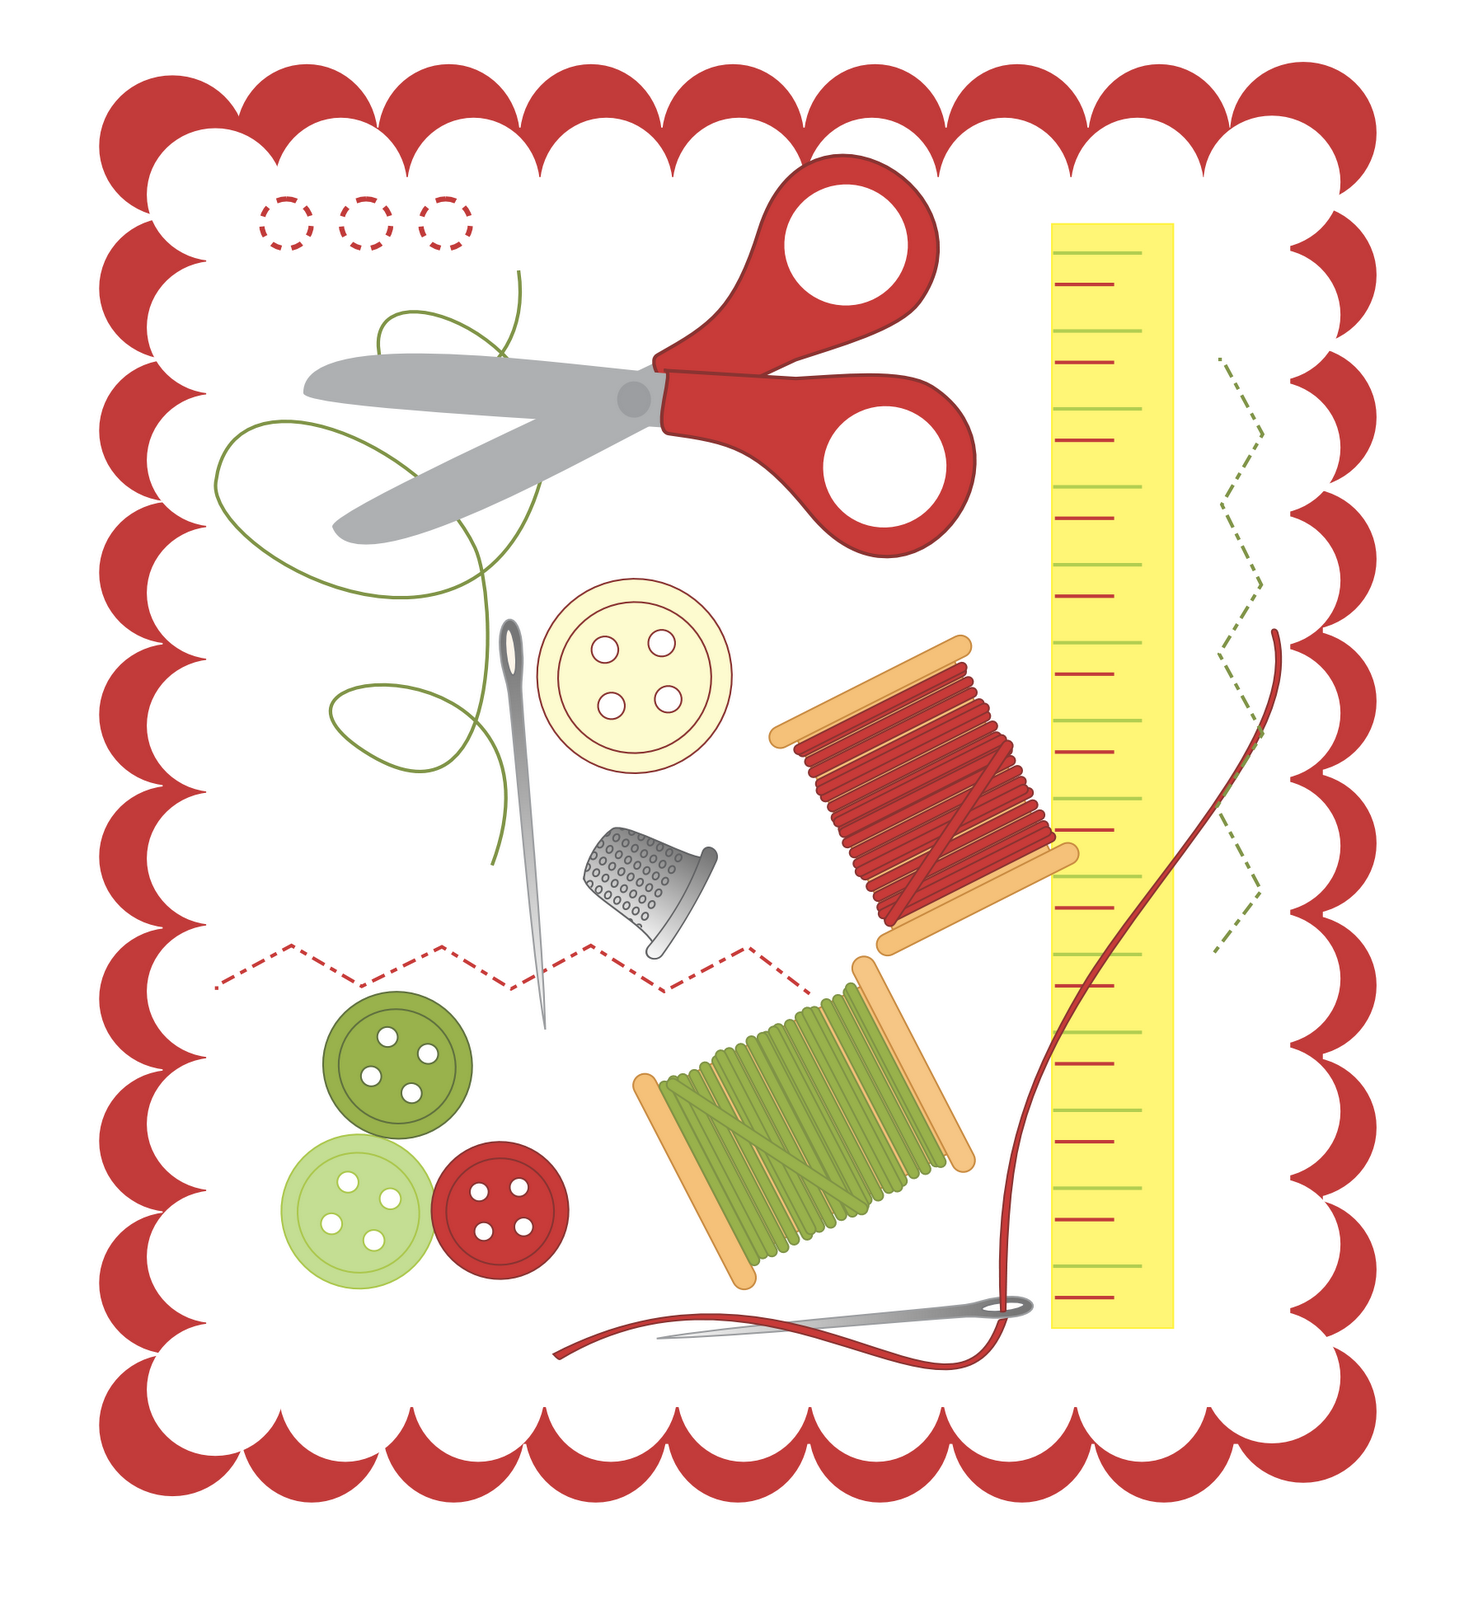 Sewing clip art free - Free PNG Sewing Notions